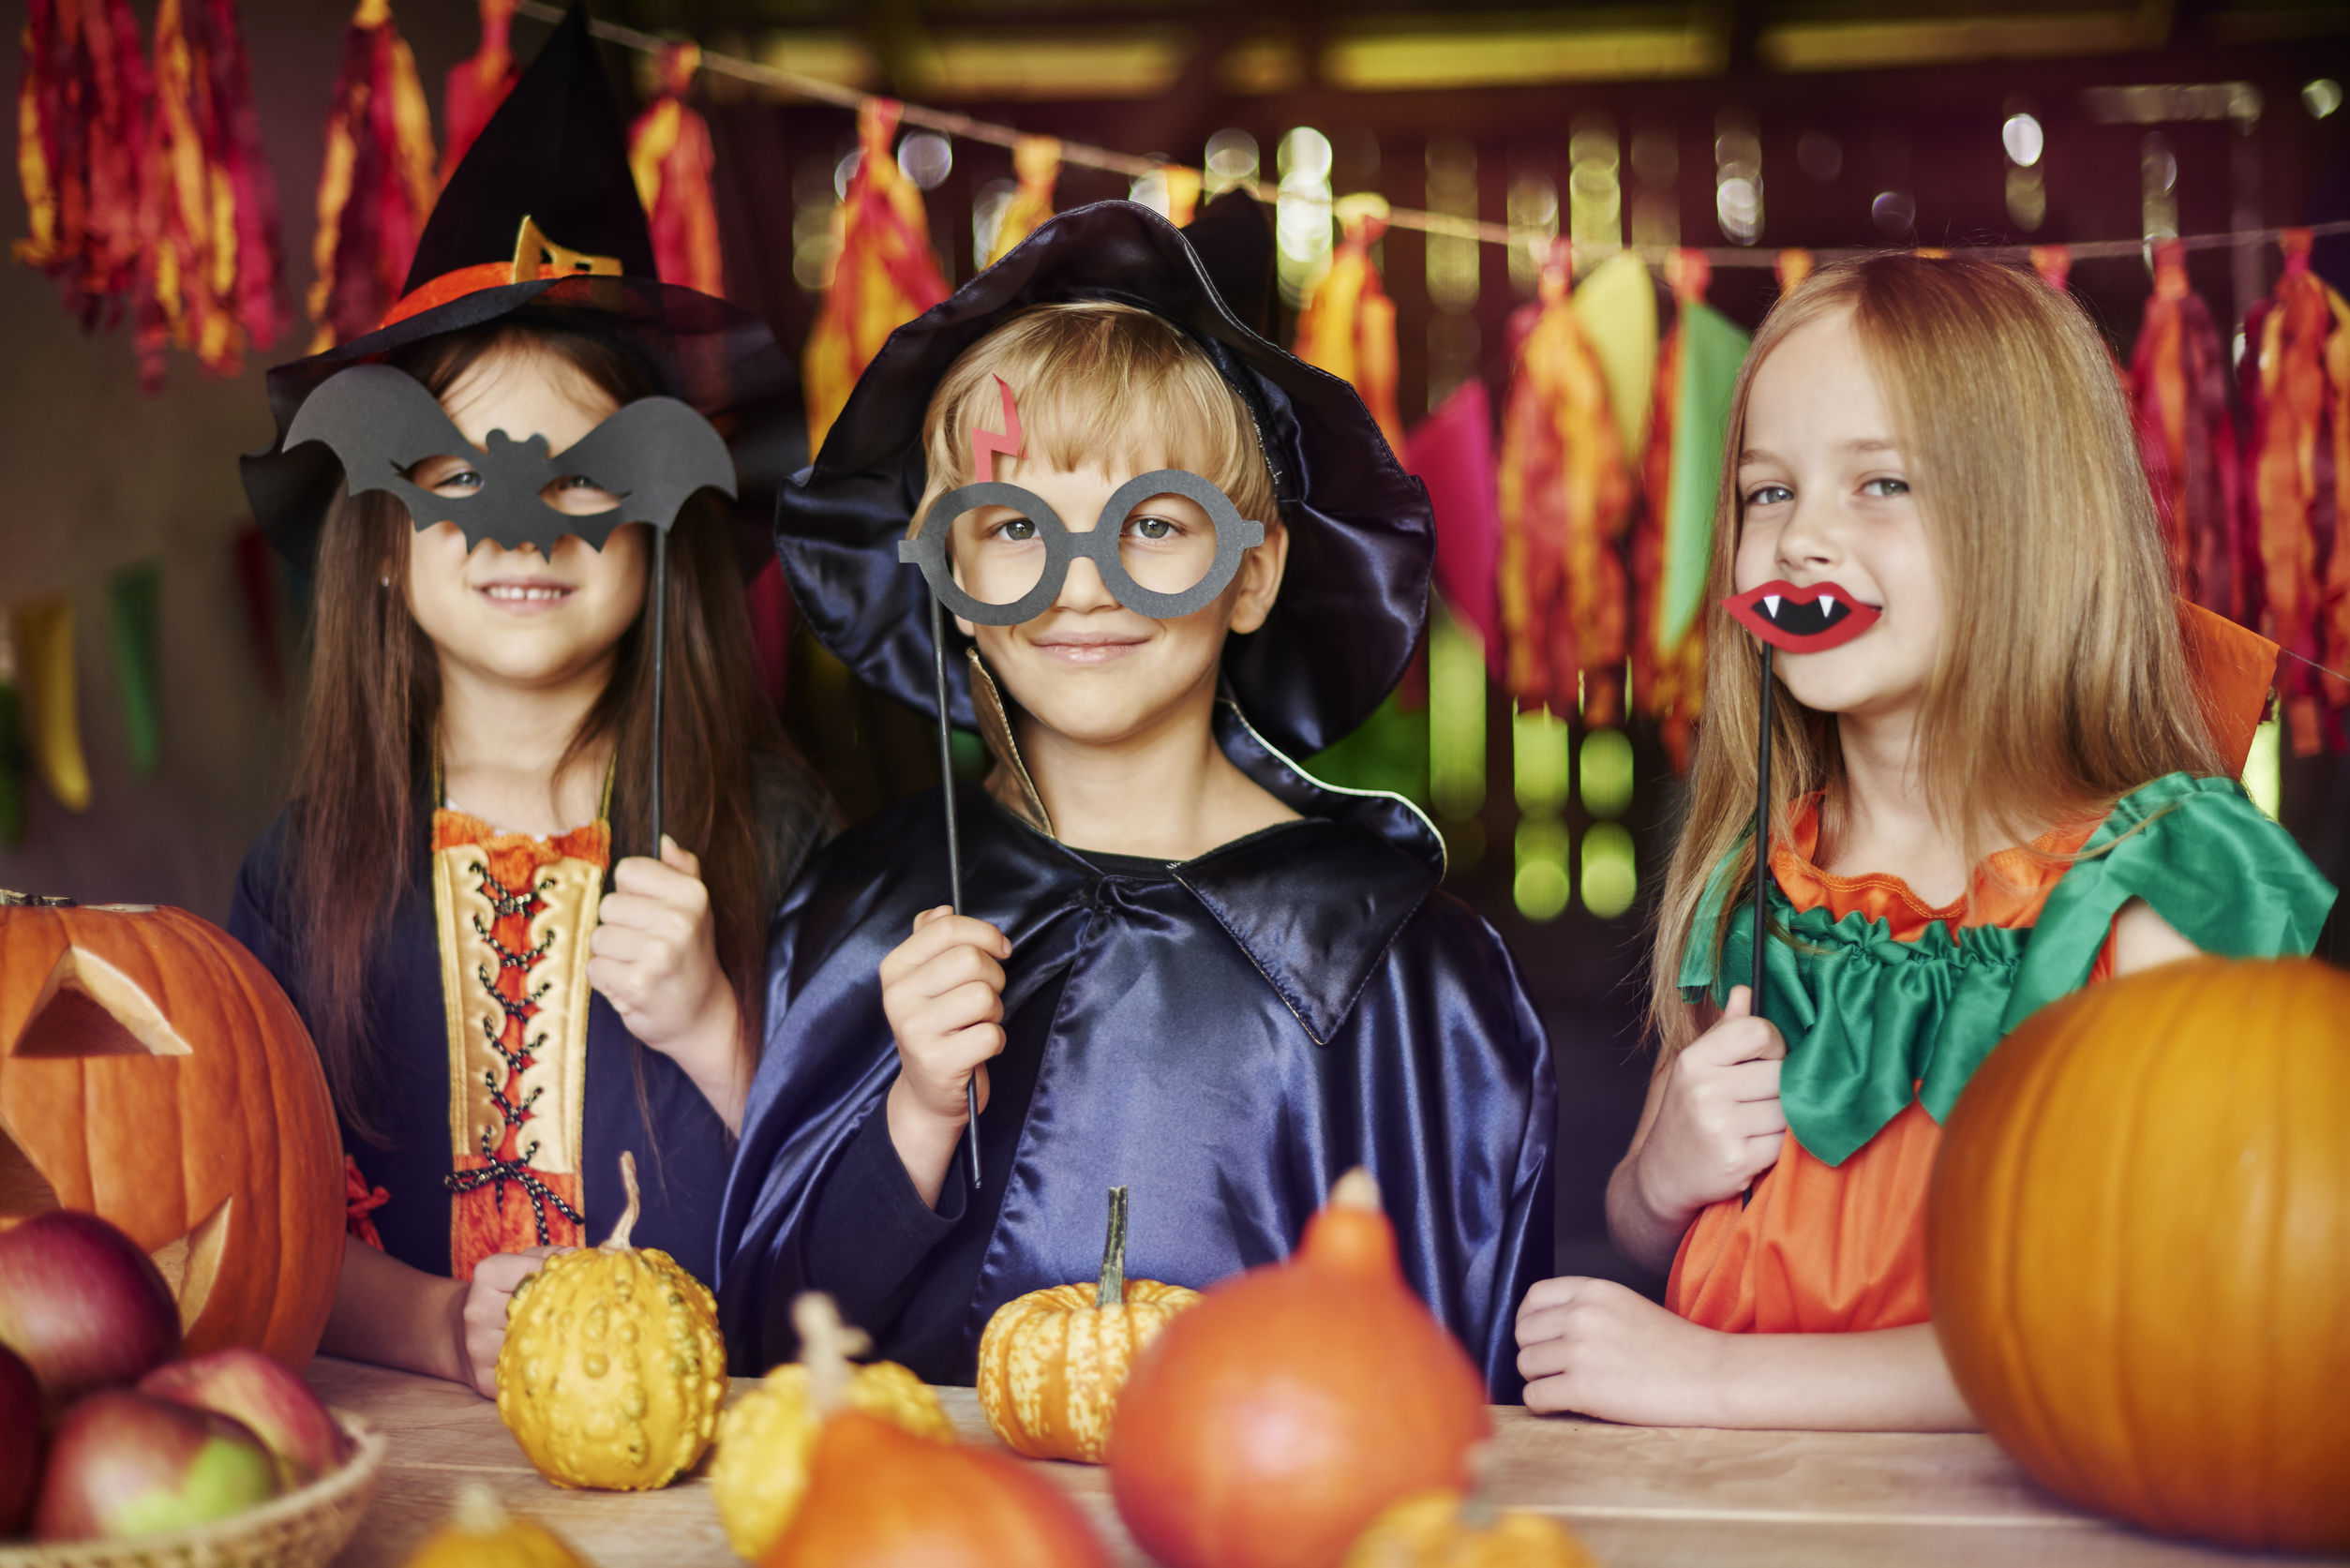 Best Kid's Costumes 2020: Shopping Guide & Review